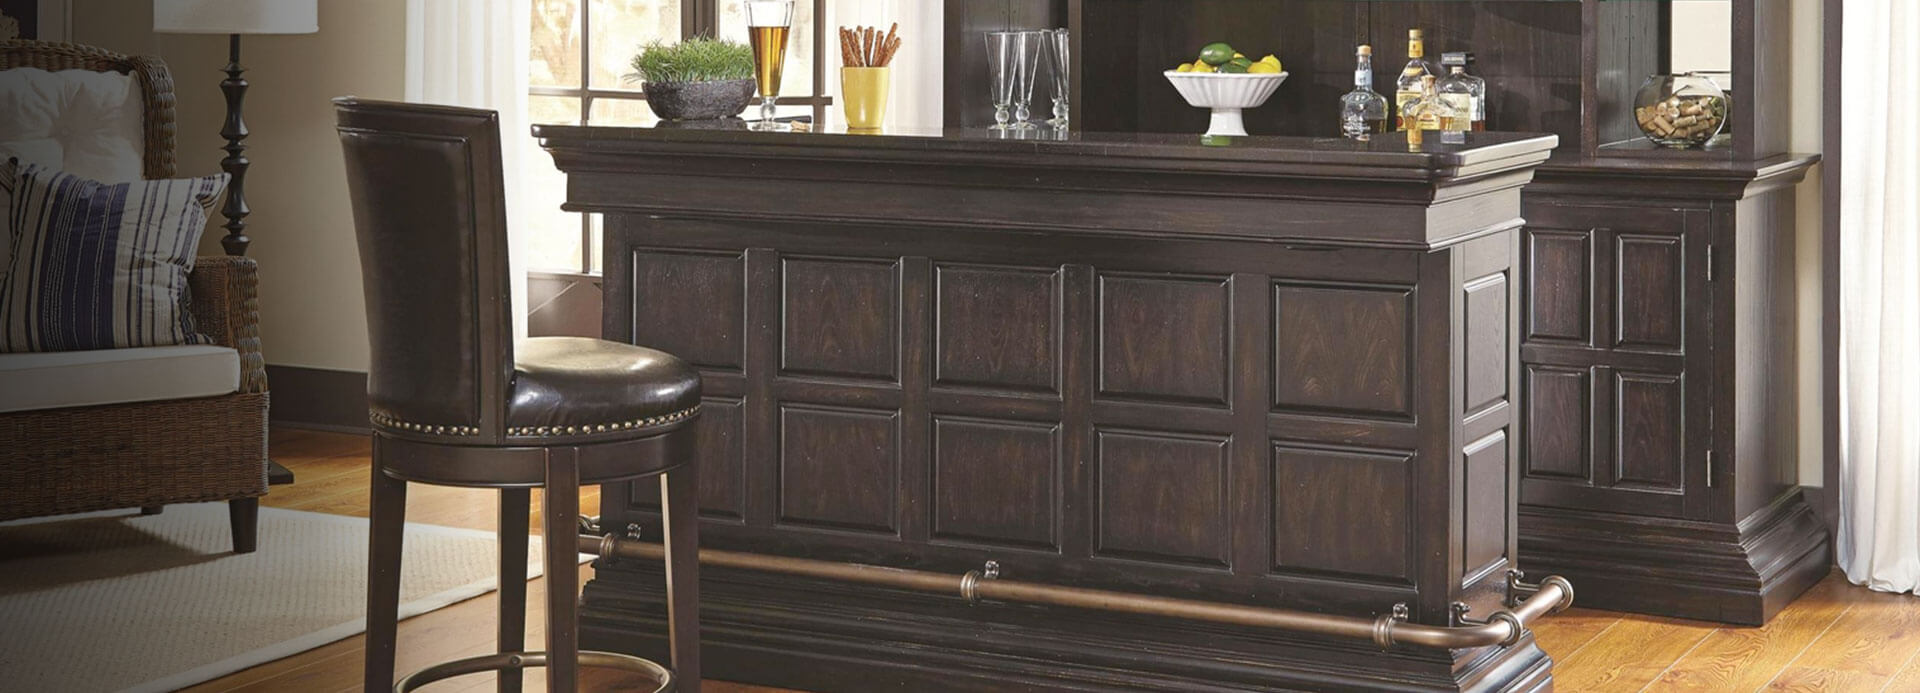 Wet bar furniture for home roselawnlutheran Home wine bar furniture